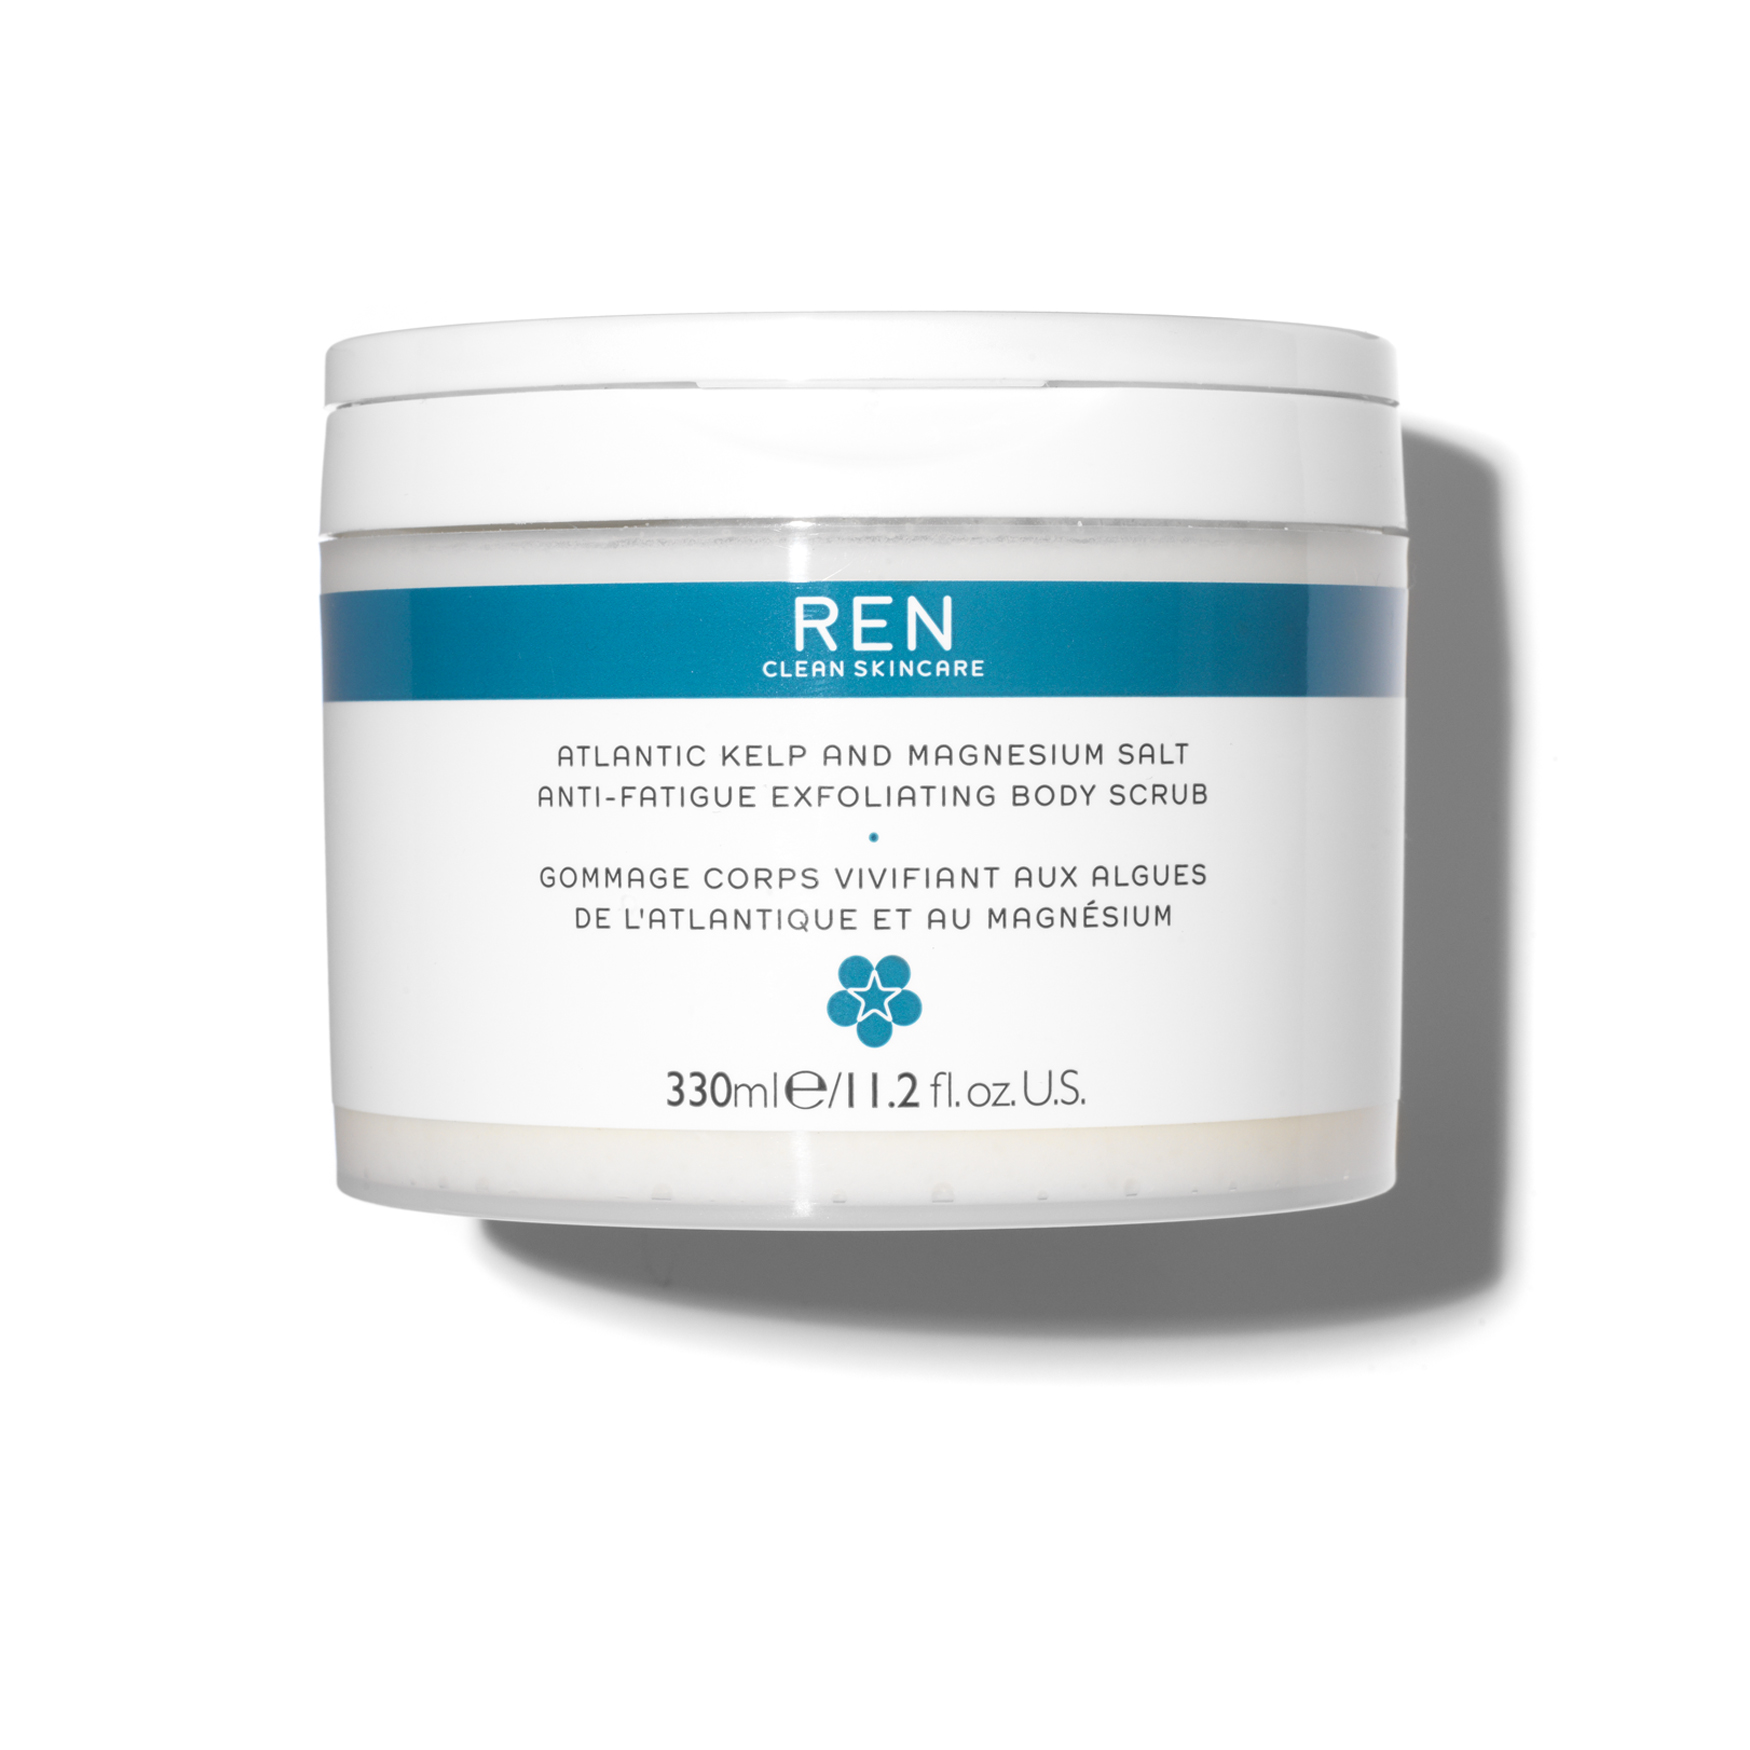 Atlantic Kelp & Magnesium Salt Anti-Fatigue Exfoliating Body Scrub, , large